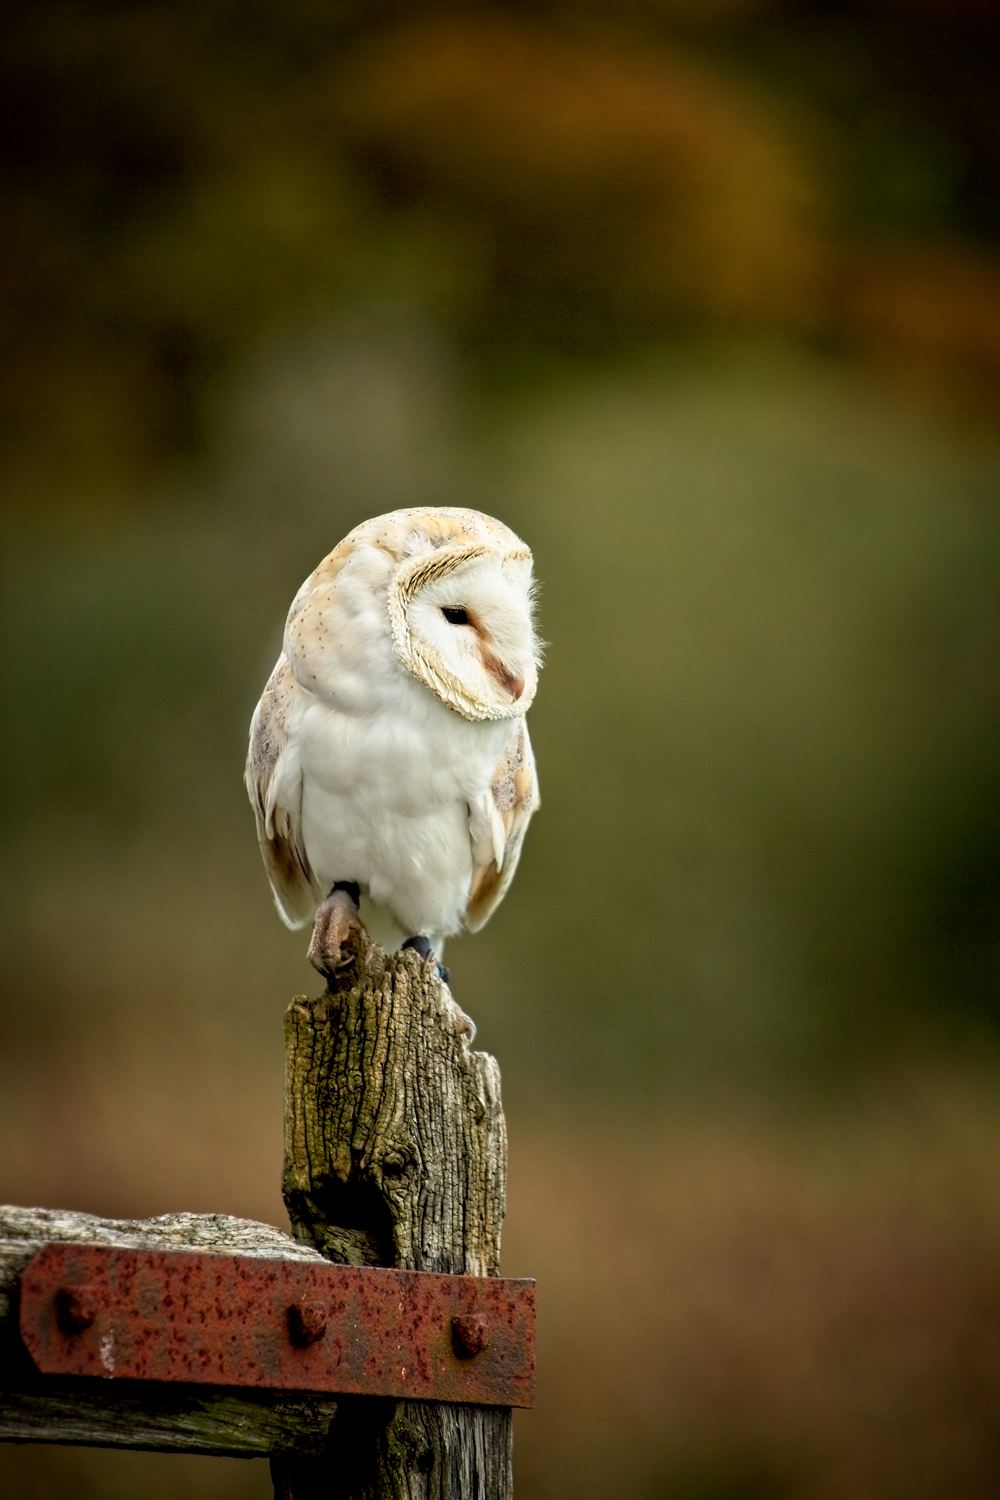 Barn Owl … - These birds have such soft feathers that they can fly silently, enabling them to swoop on their prey (mostly voles and mice). On a summer evening as the sun is going down these birds used to be a common sight, usually leaving a barn ready for an evening hunting.